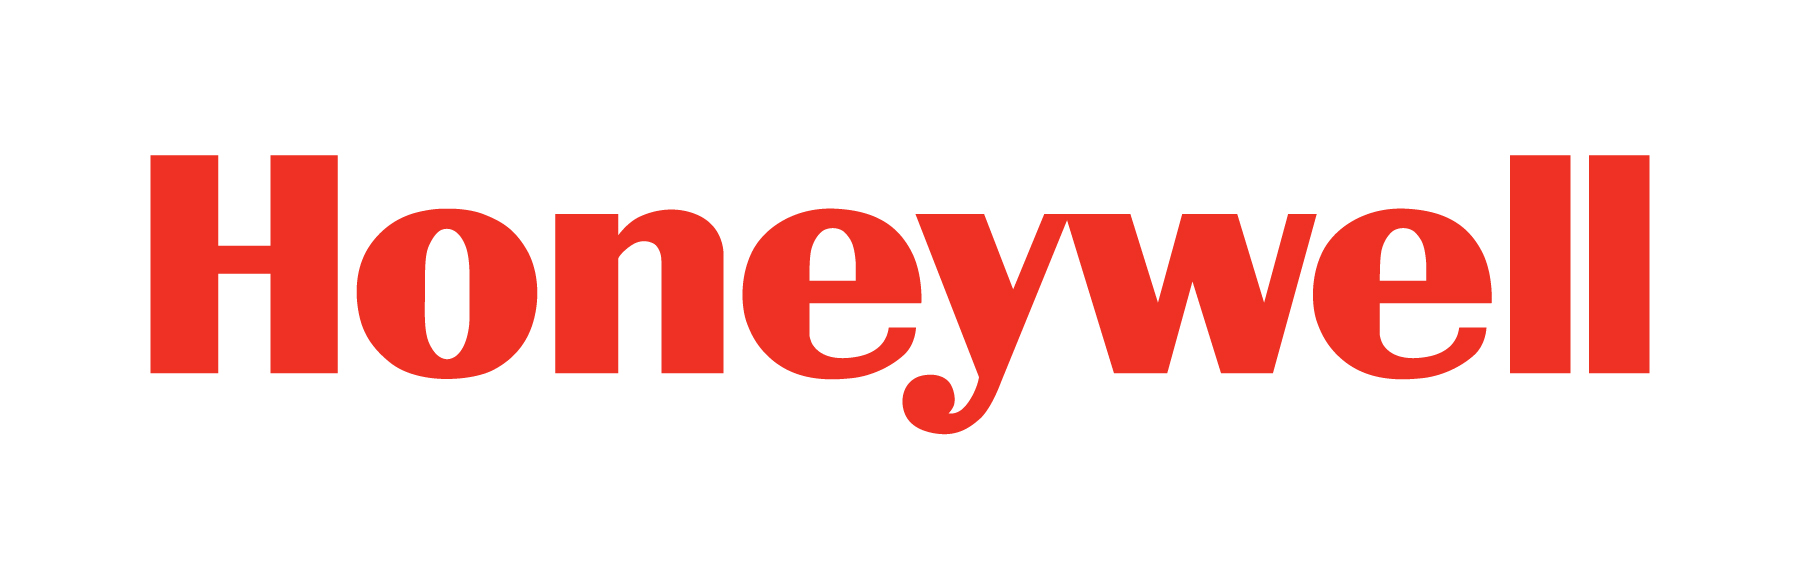 Honeywell Safety and Productivity Solutions